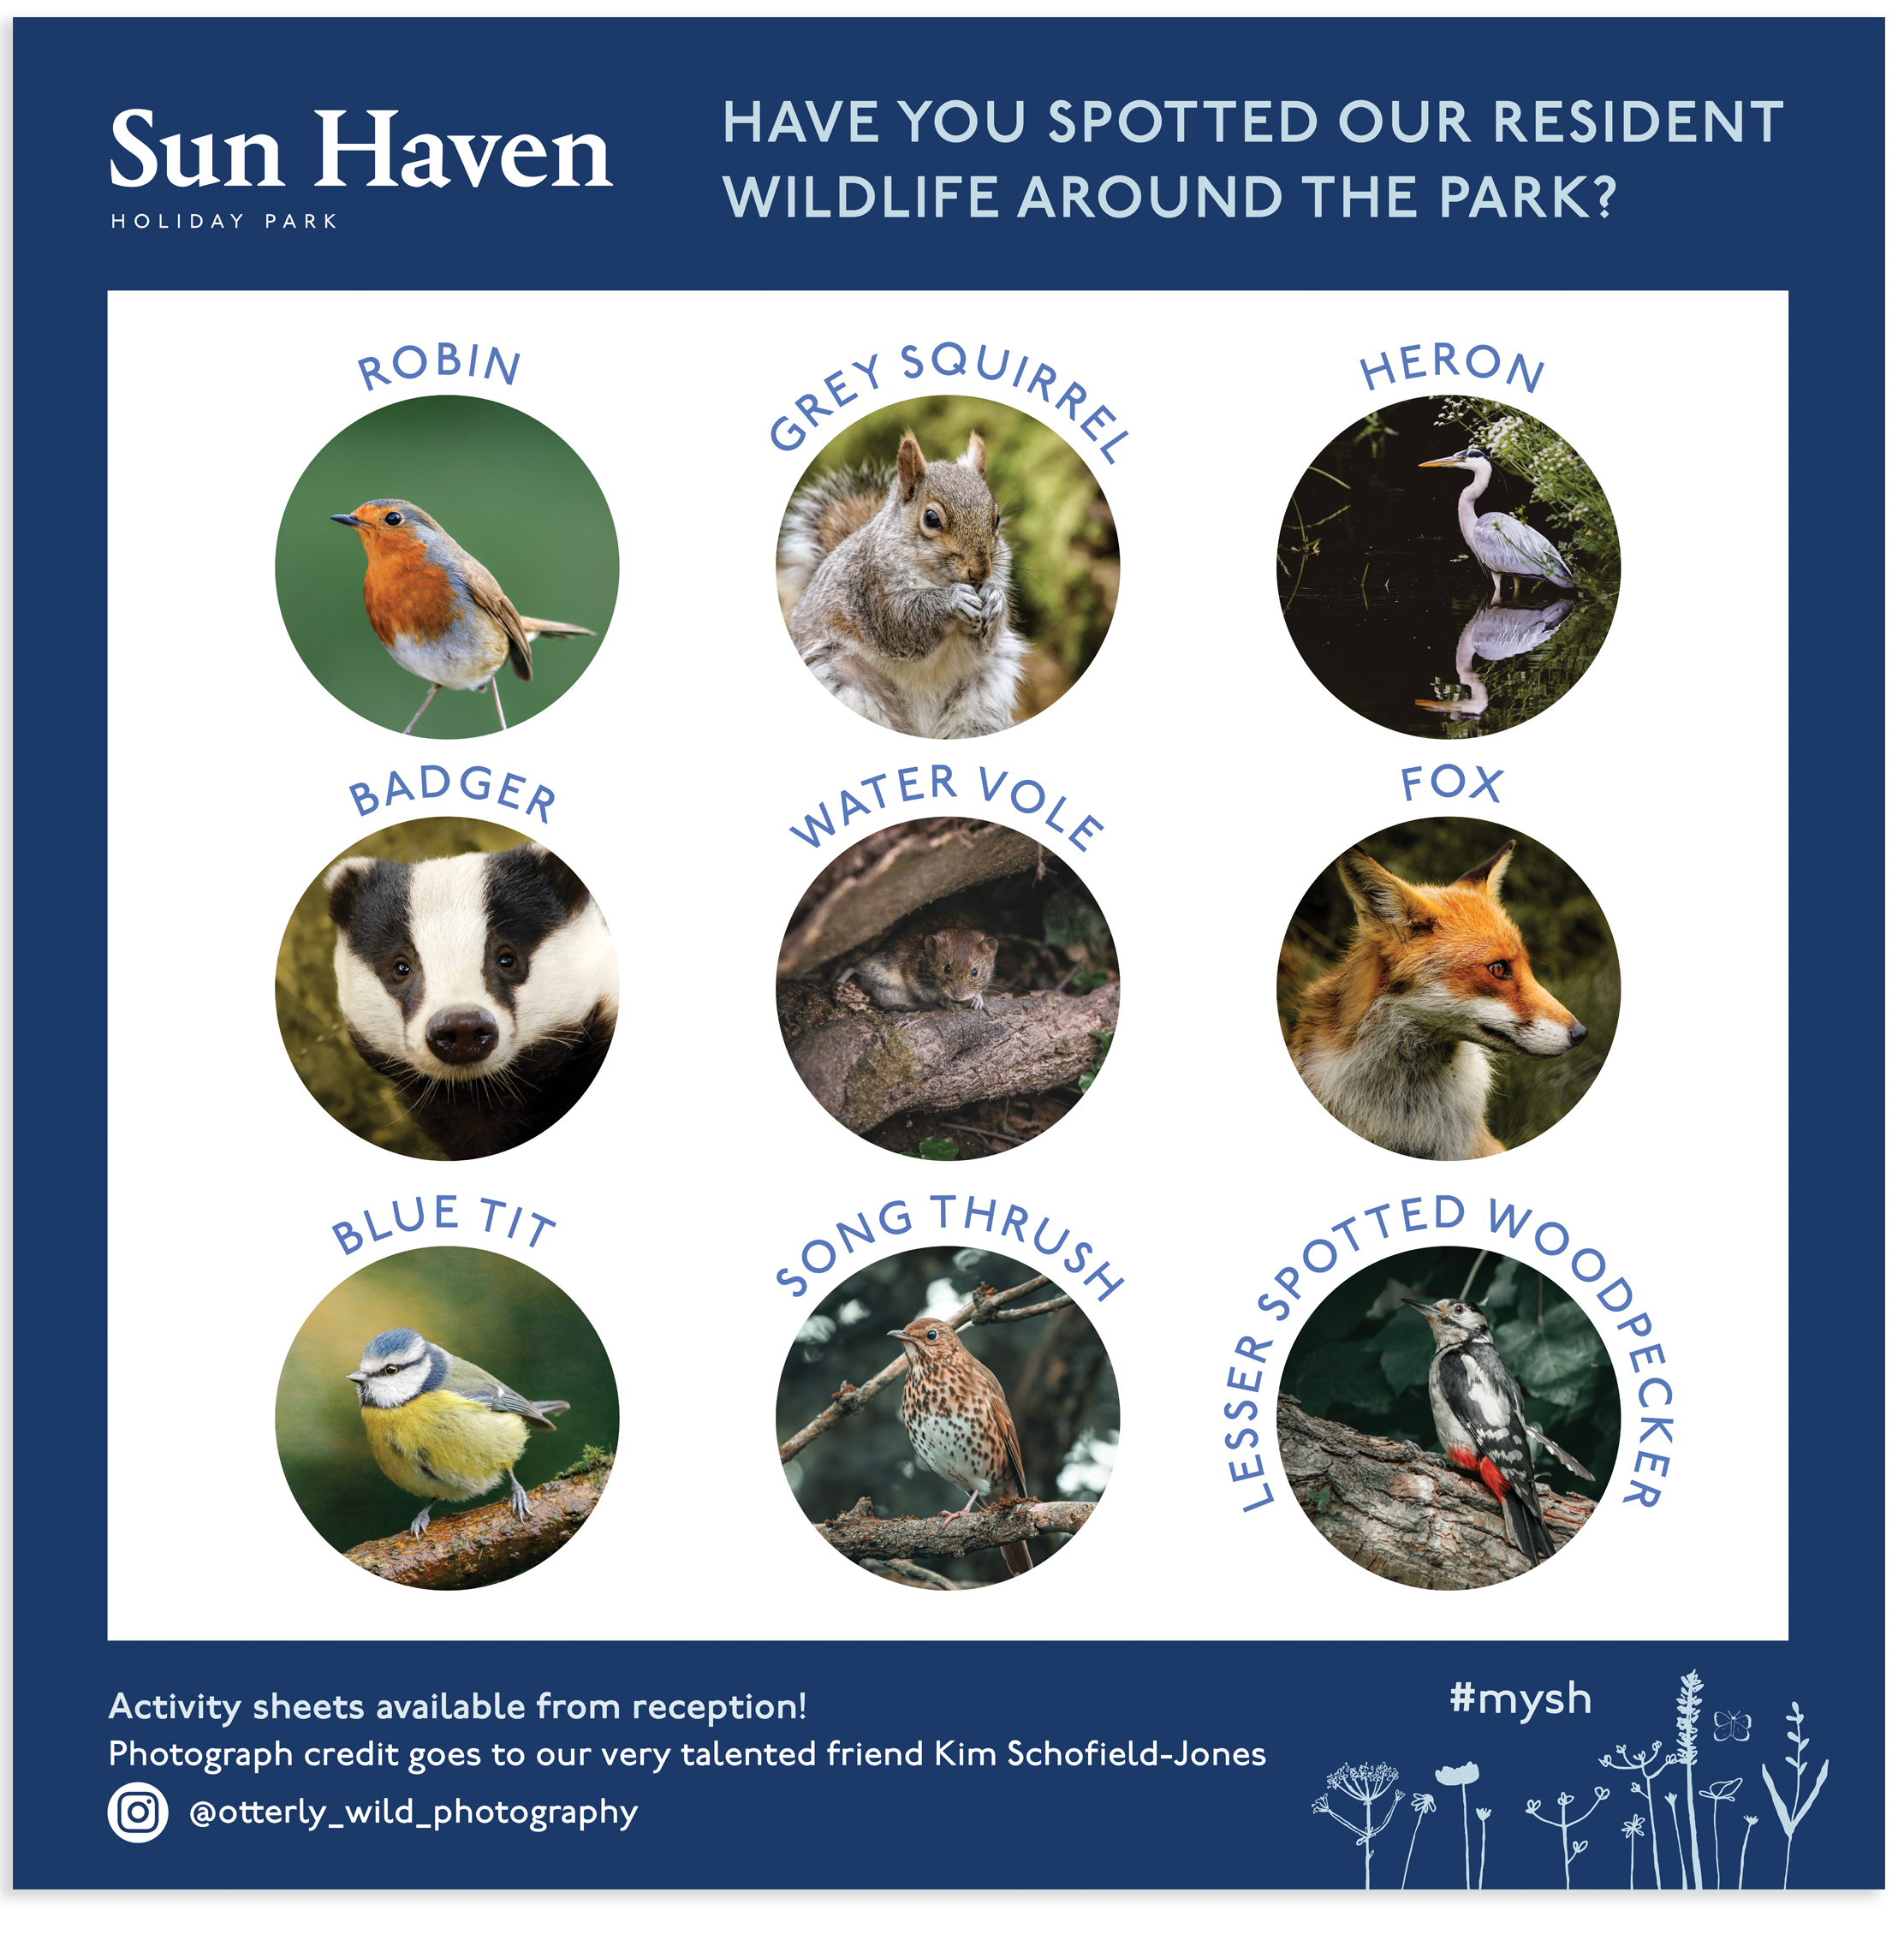 Wildlife Sign for Sun Haven Holiday Park